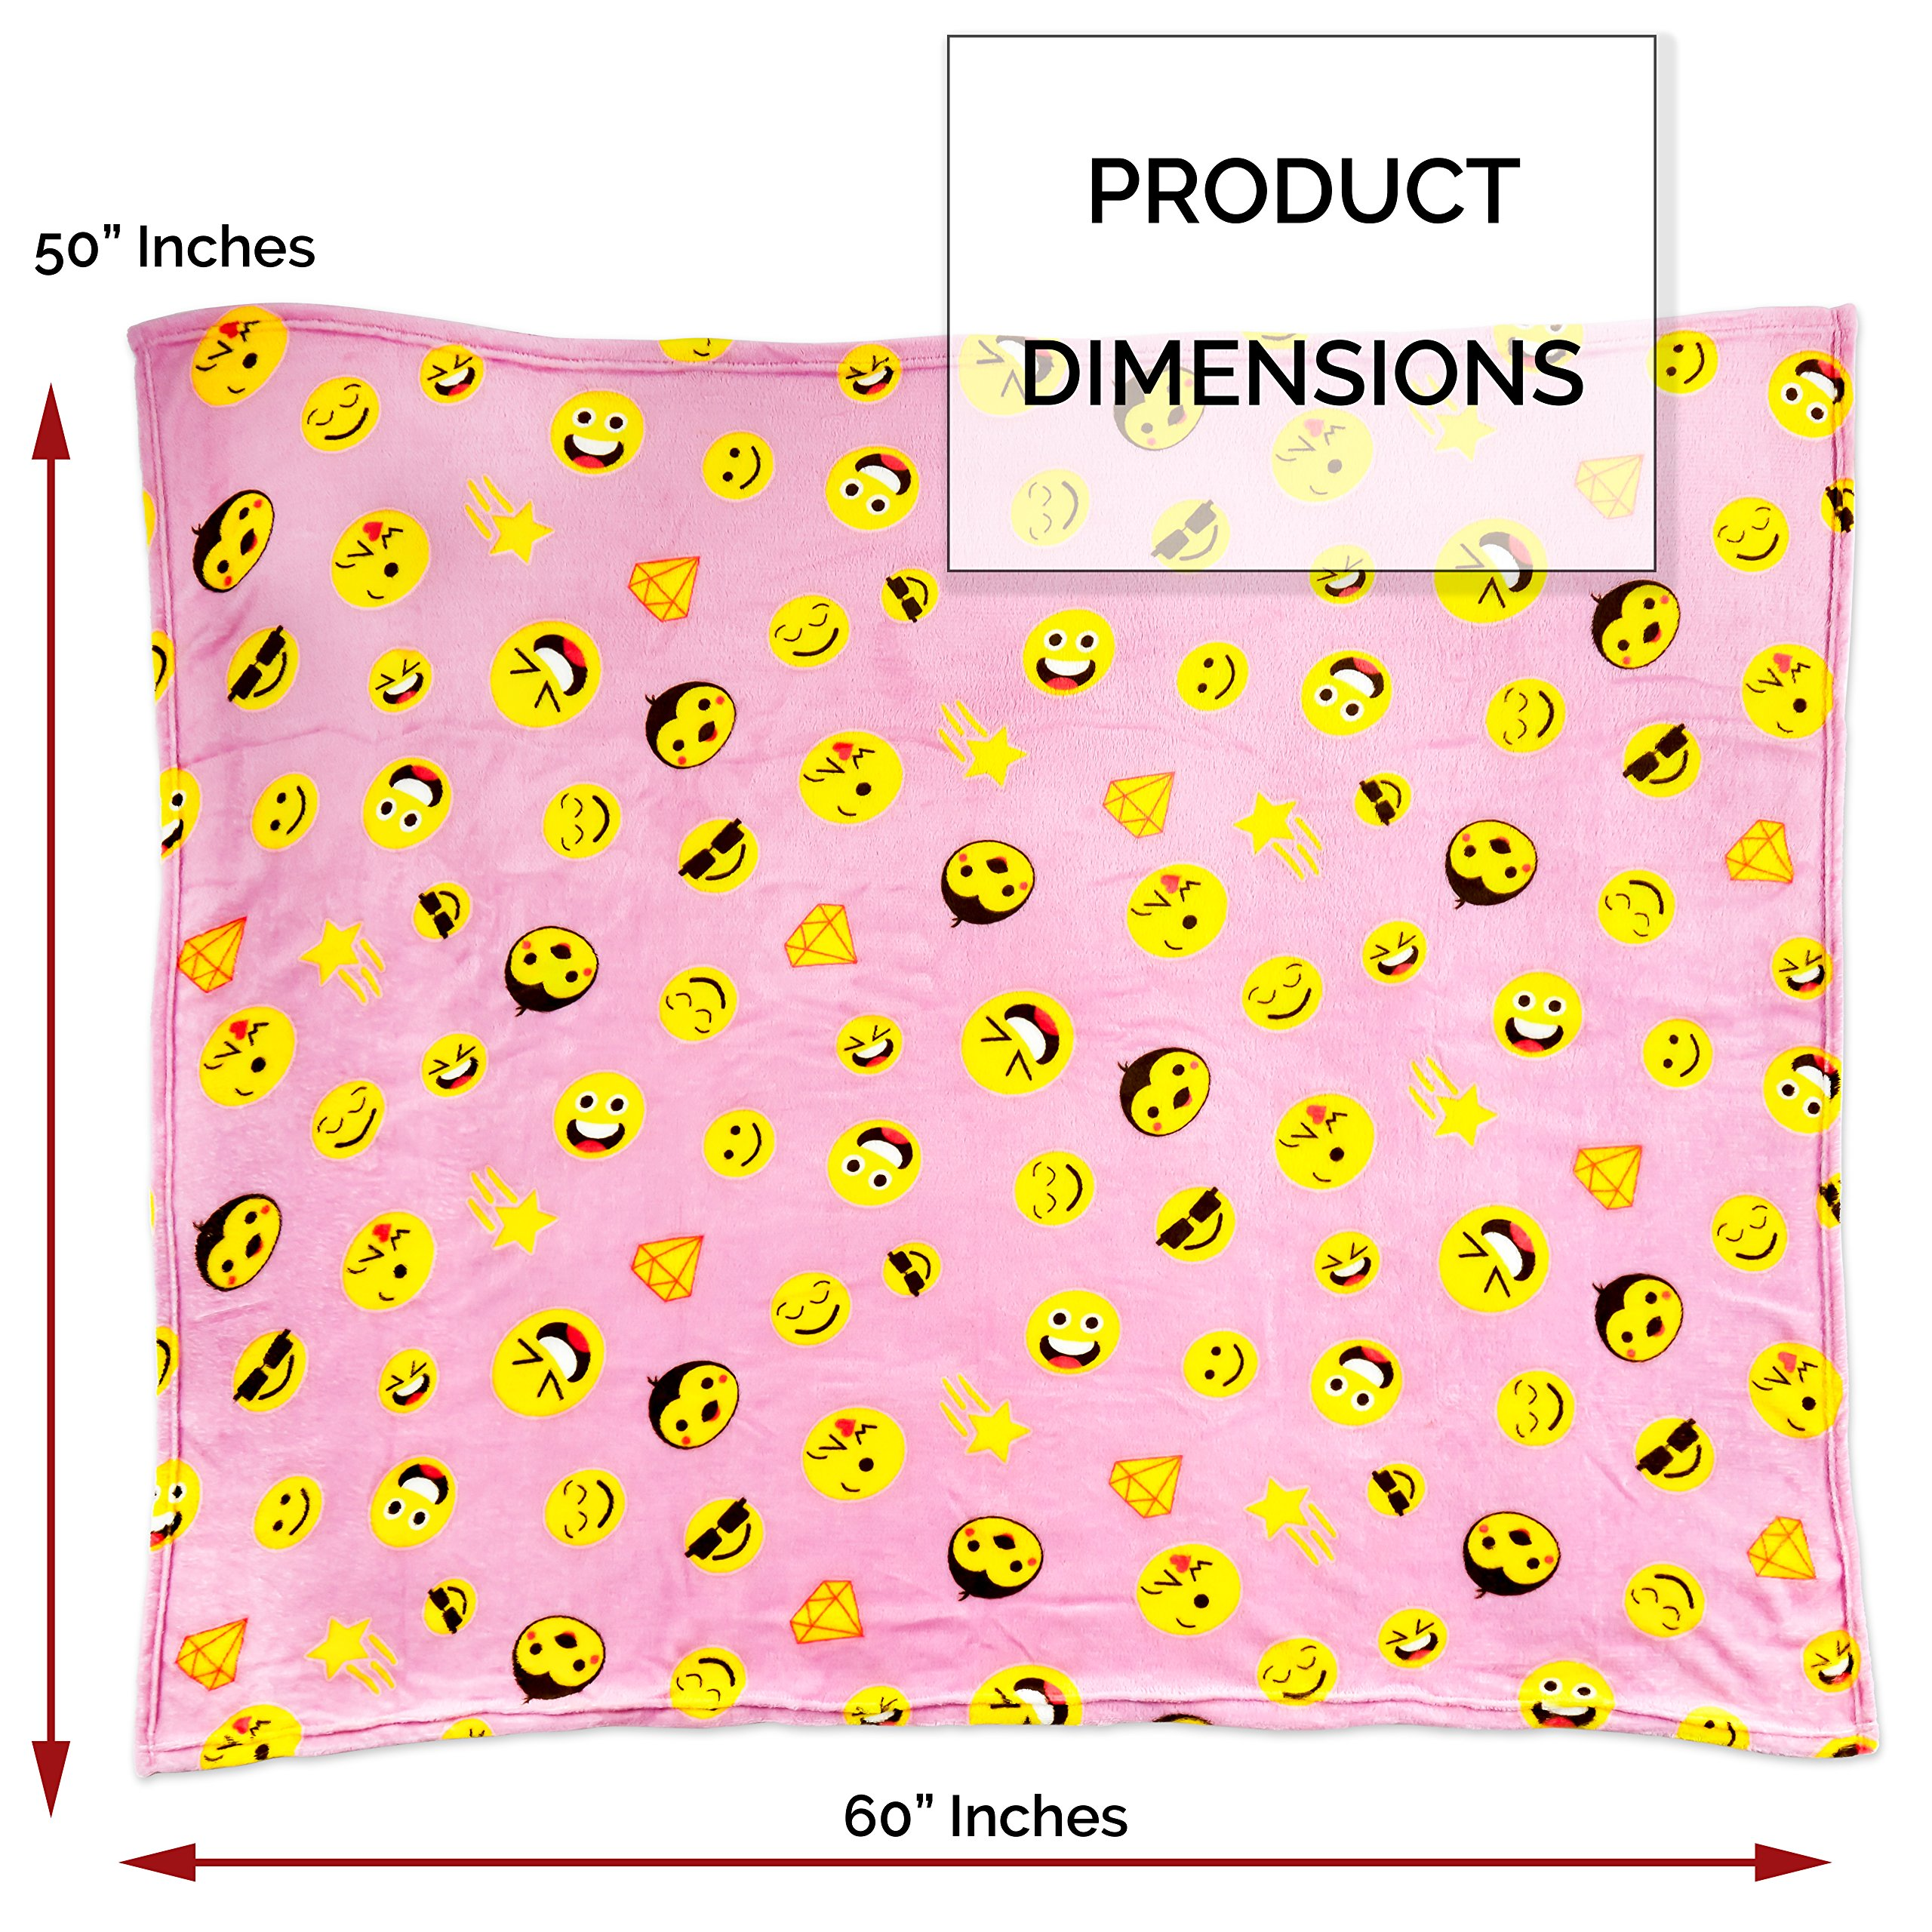 Koltose by Mash Pink Emoji Throw Blanket, Adorable Soft Large Fluffy Lightweight Emoticon Blanket for Girls and Boys, Toddlers Kids Teens and Young Adults (50in x 60in) by Koltose by Mash (Image #3)